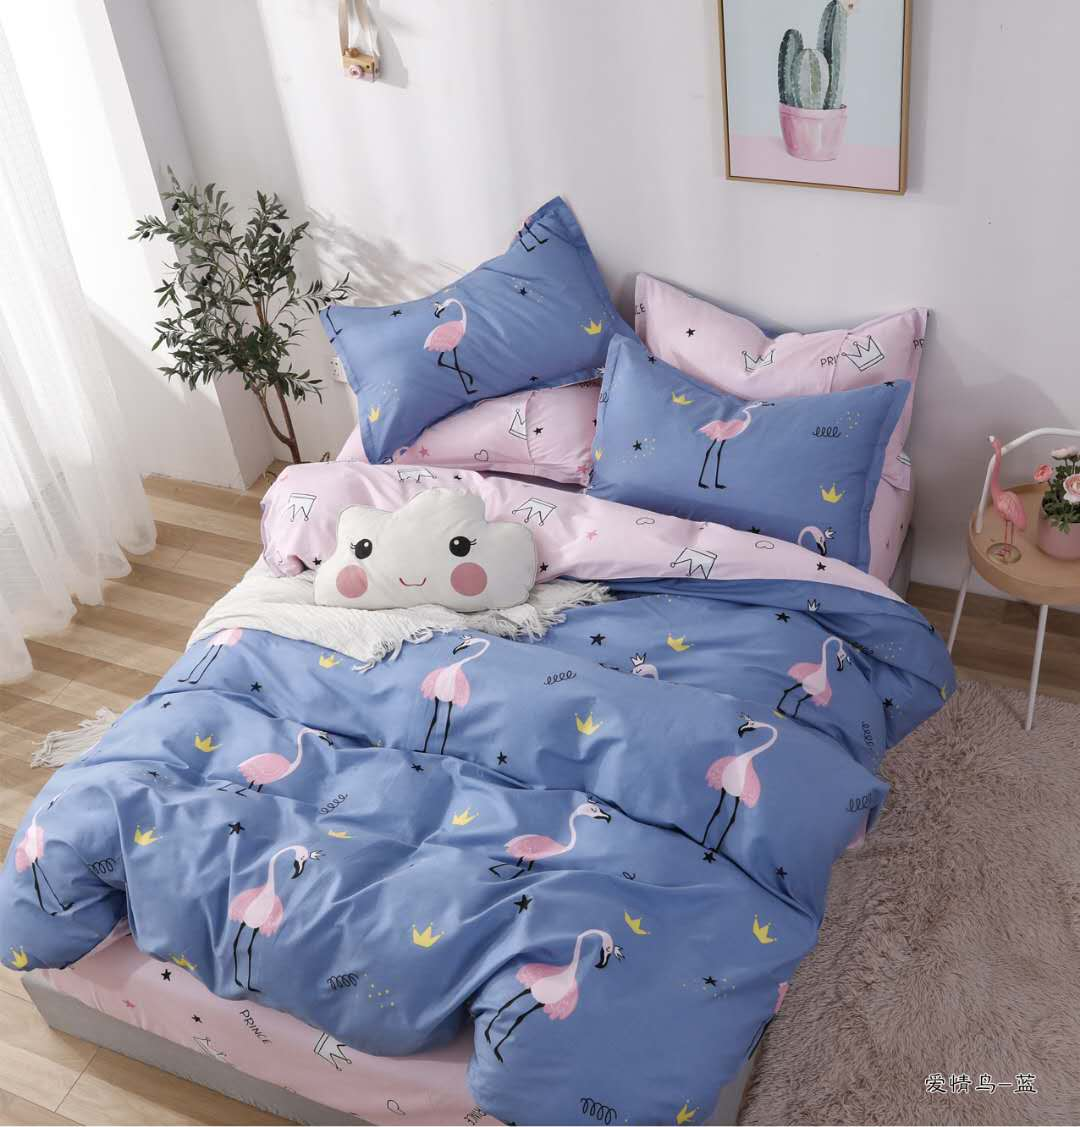 3 Piece Duvet Cover Set 100% Natural Cotton King Size with Wholesale Price Featured Image